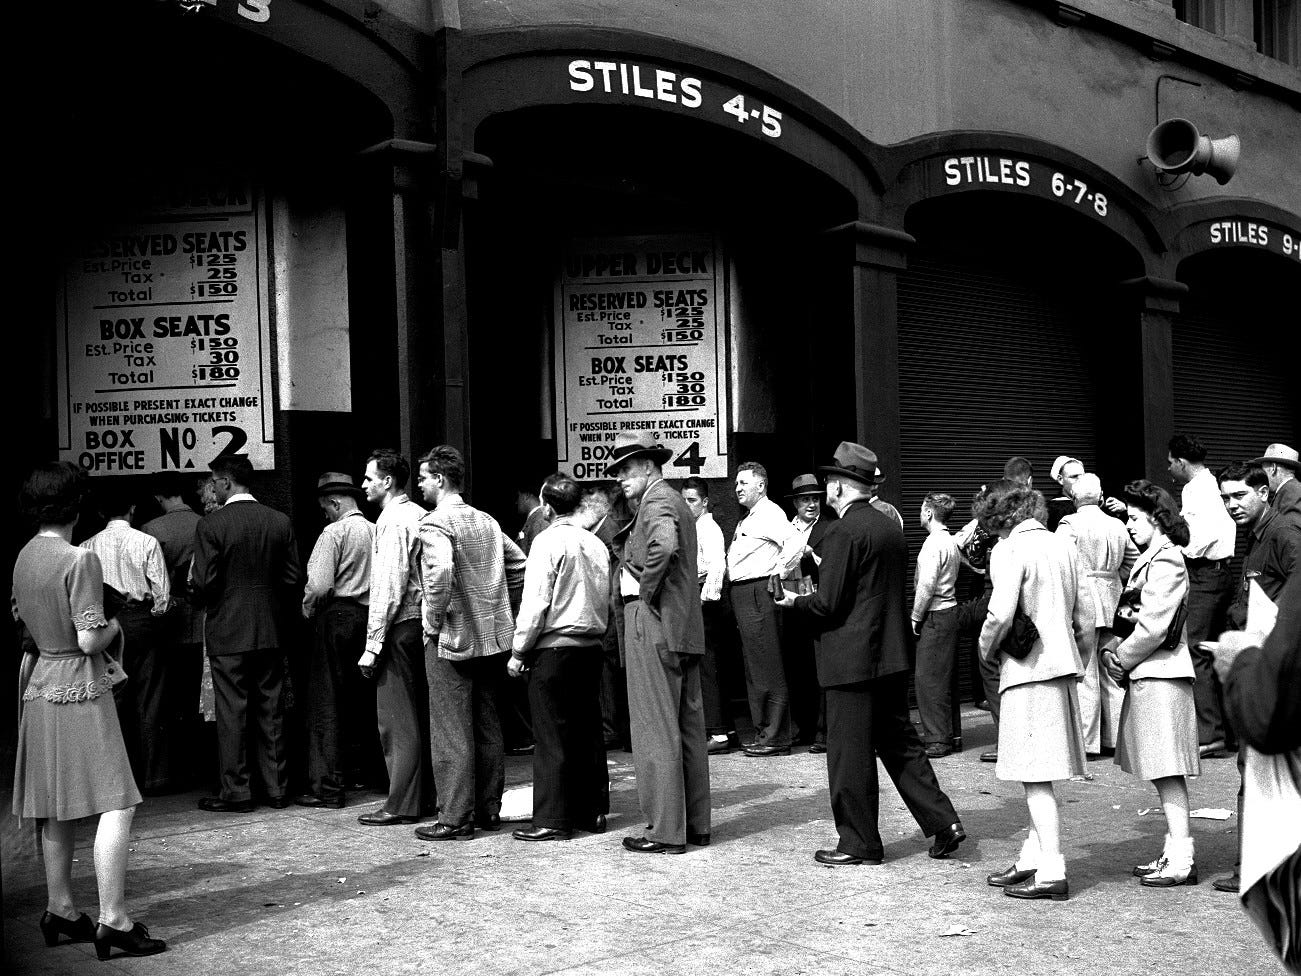 Tigers fans line up to get into Briggs Stadium in 1944, when box seats were going for $1.50 plus tax.